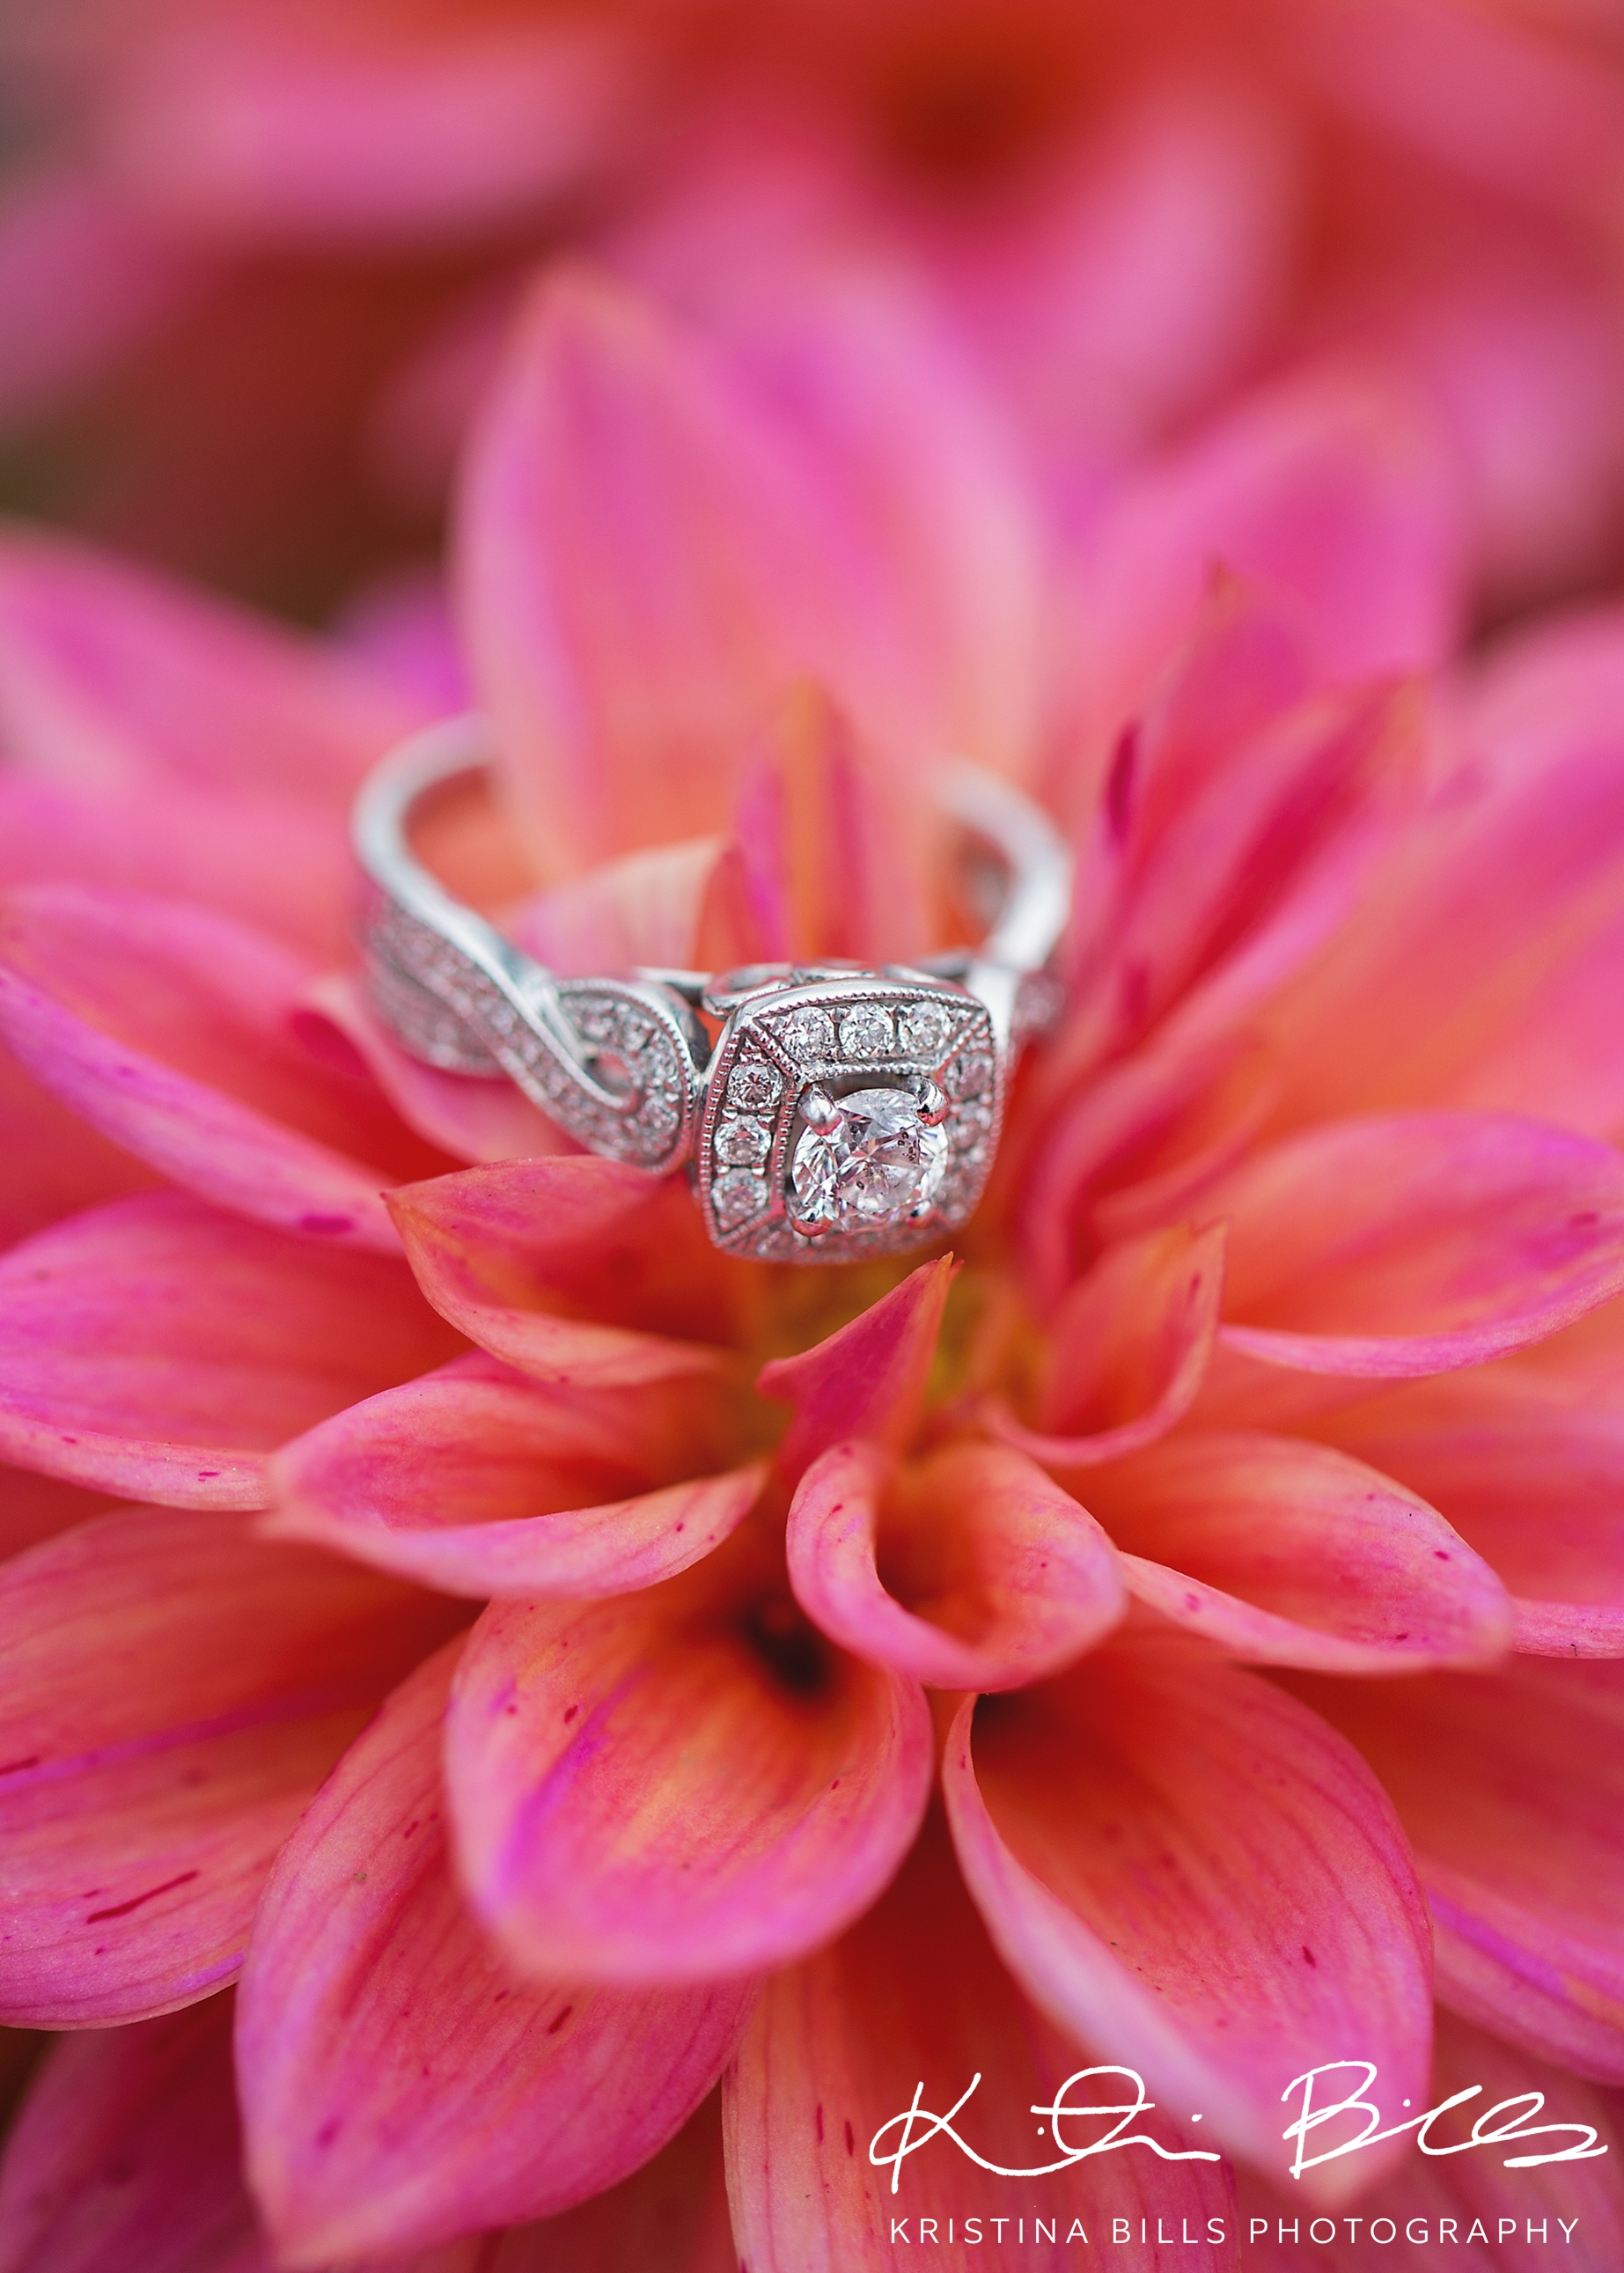 Her ring is GORGEOUS and this flower, I LOVE! In fact I will probably go back and buy a few of these for my yard. Totally in love!